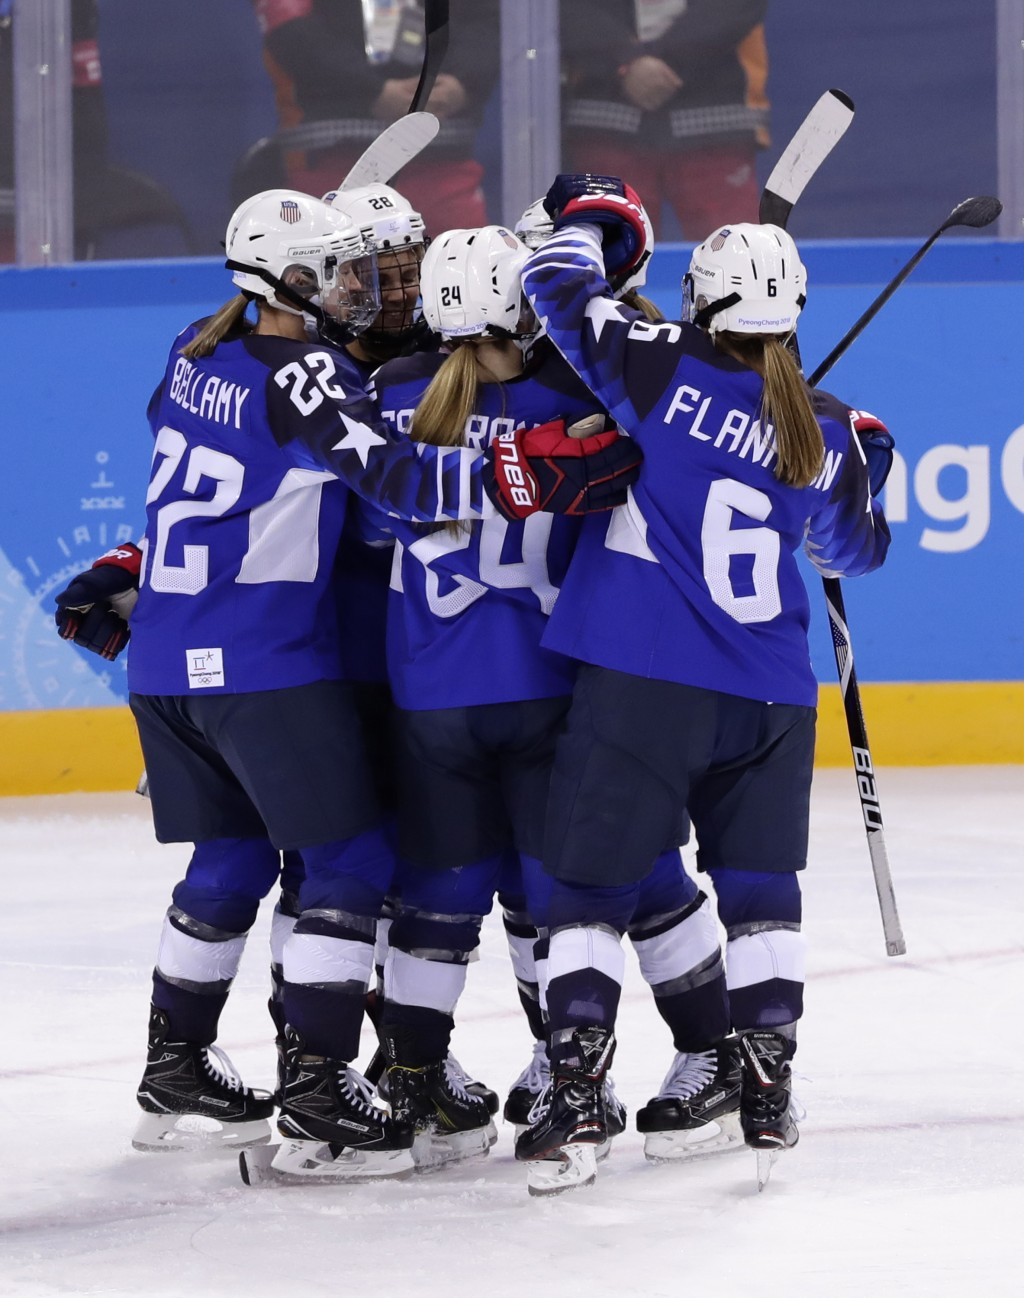 Hannah Brandt, of the United States, celebrates with her teammates after scoring a goal against the team from Russia during the third period of the pr